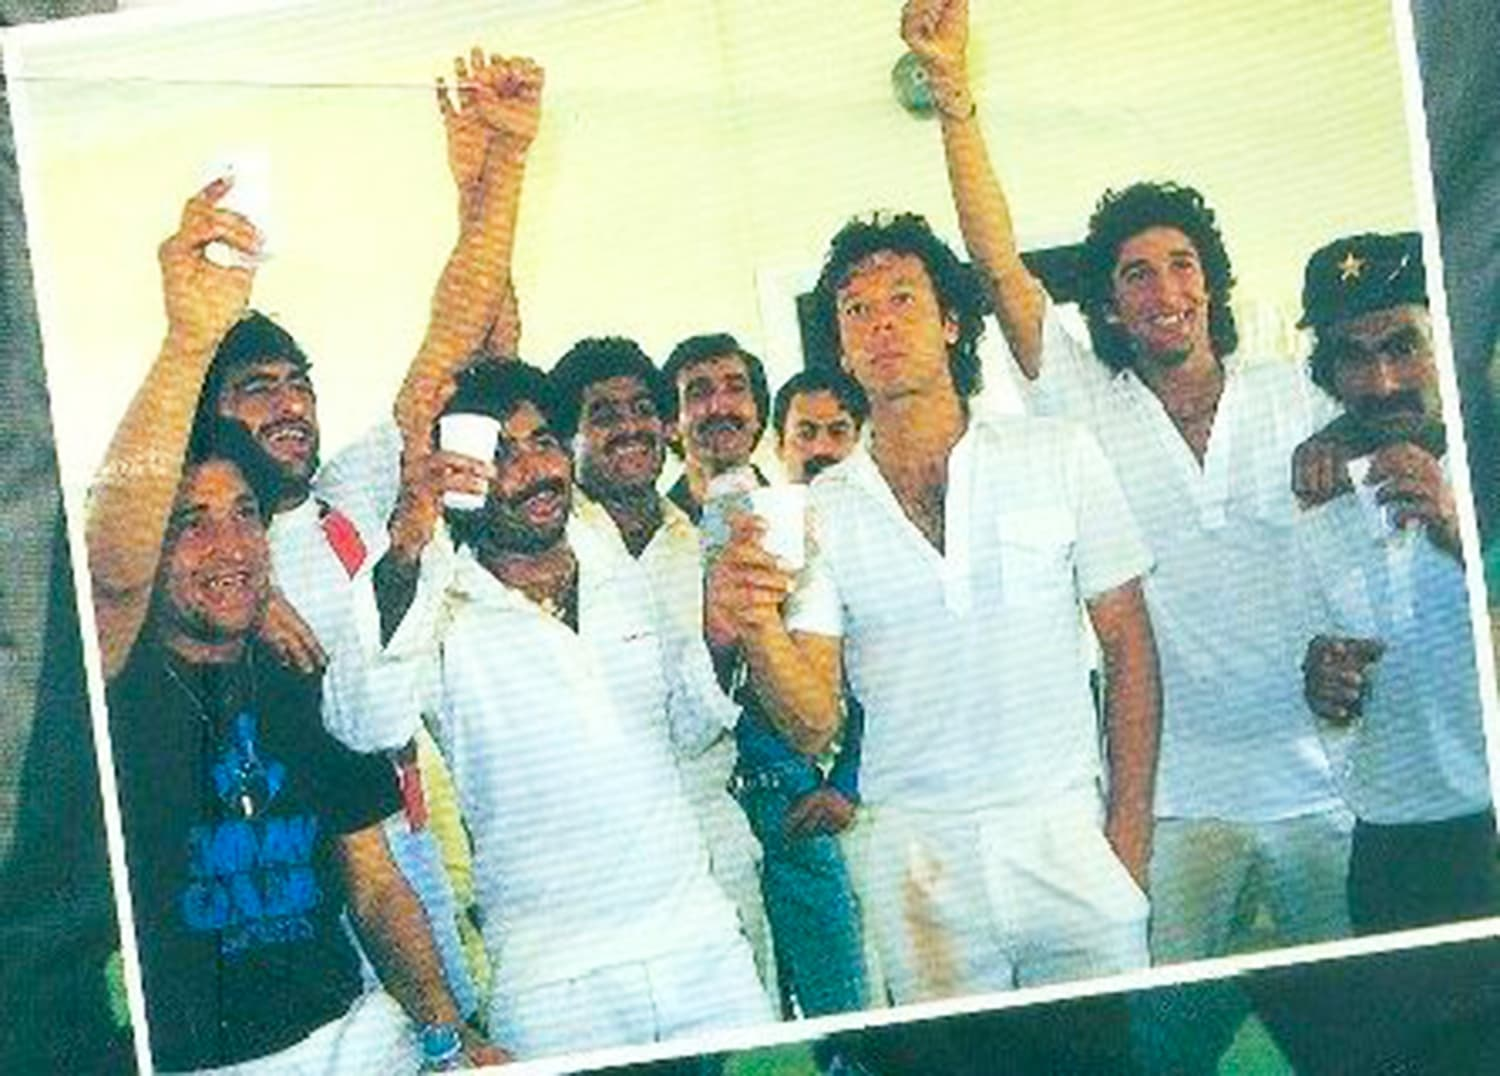 Sharjah, 1986. Pakistan team celebrates its first major tournament win. This victory propelled cricket ahead of hockey in Pakistan for the first time in more than 25 years. -- Photo: Akhbar-e-Watan